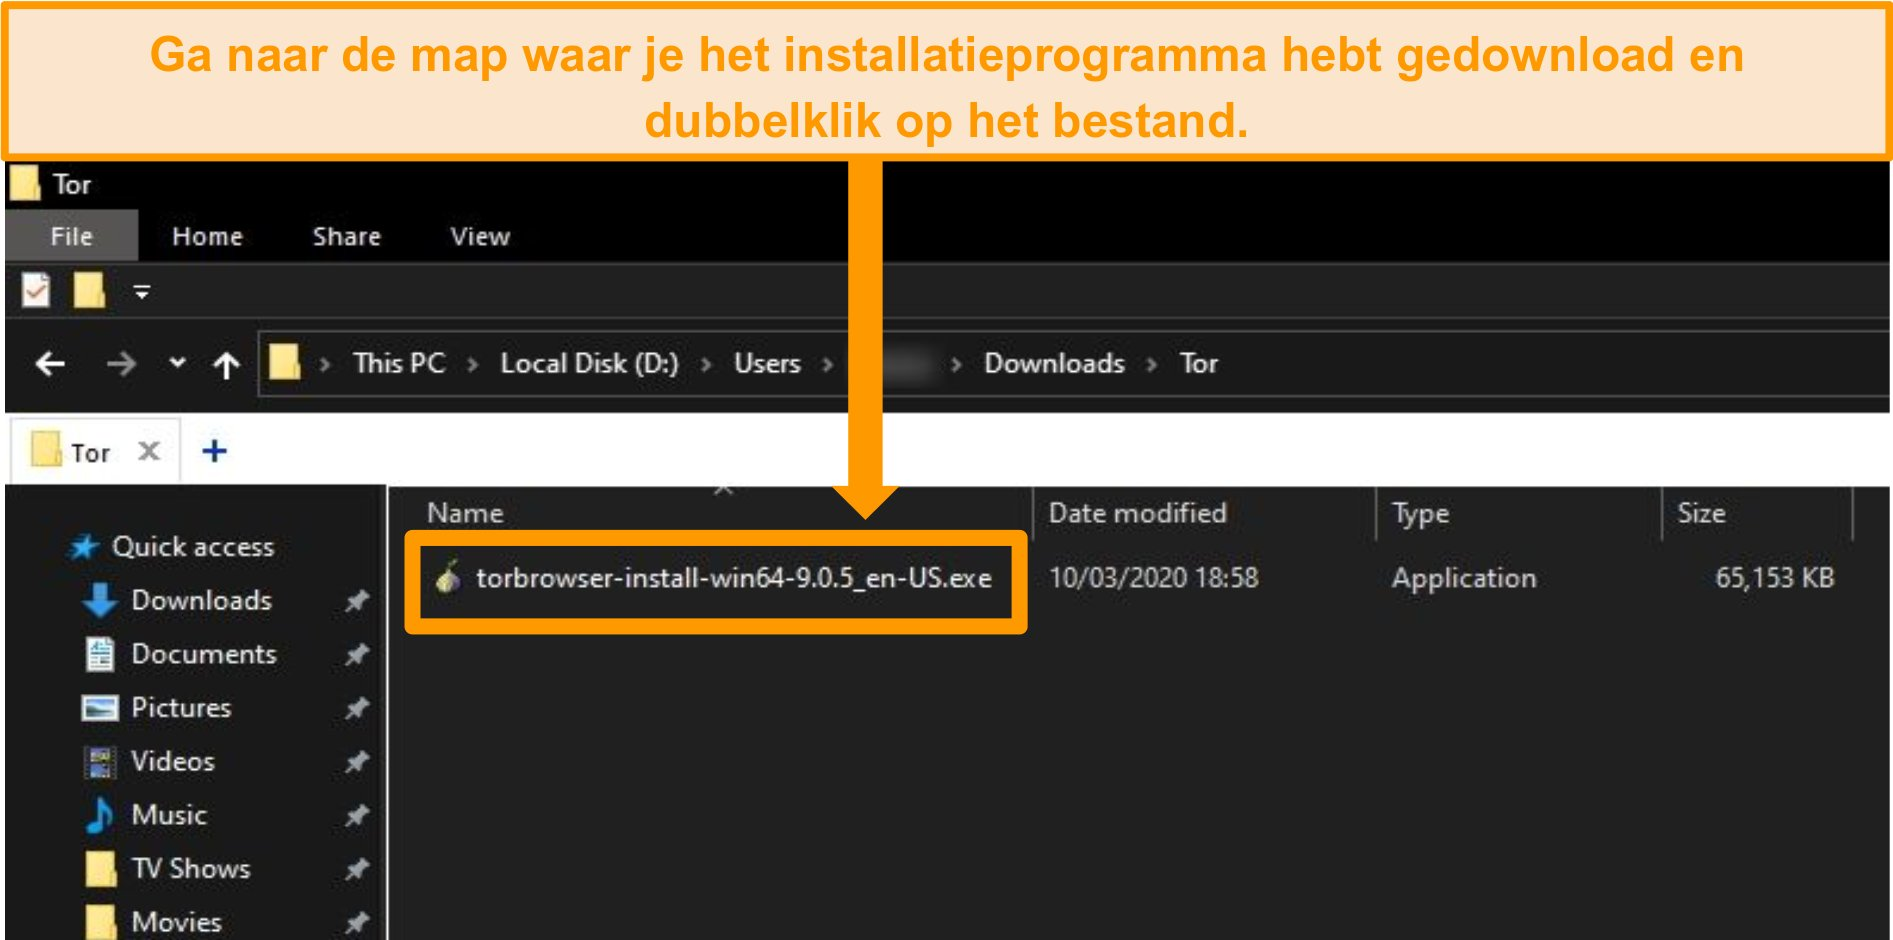 Screenshot van Tor-installatieprogramma in downloadmap op Windows 10